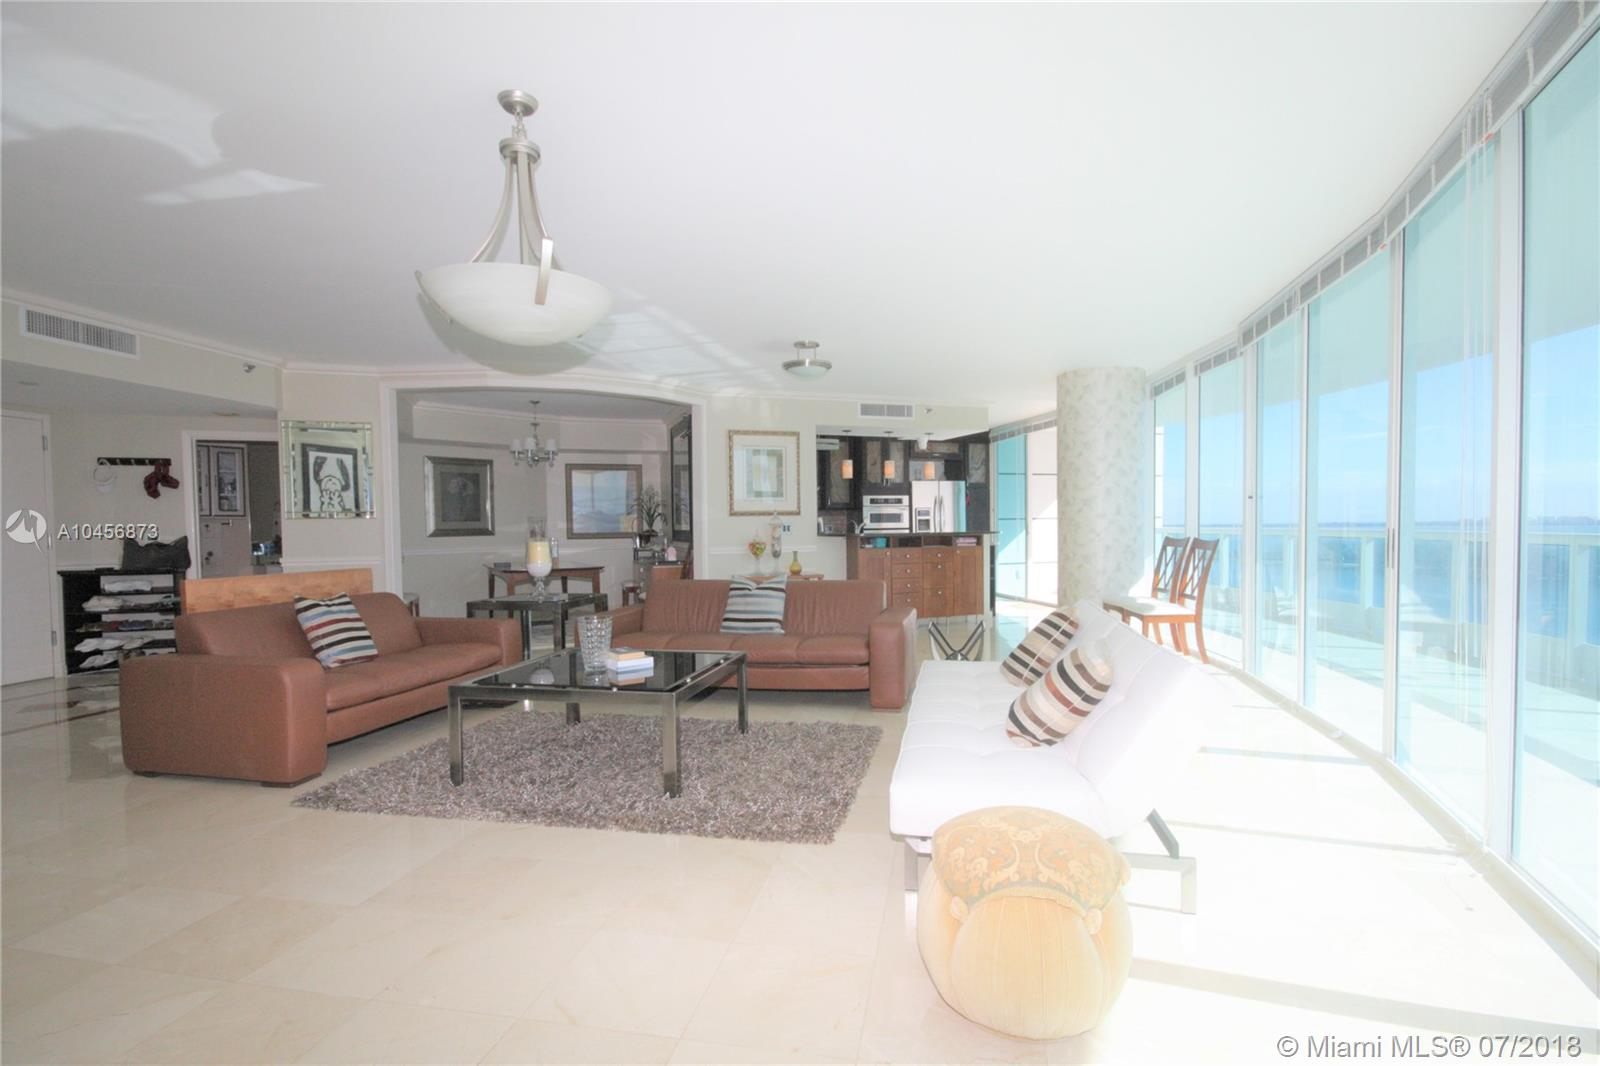 2127 Brickell Avenue, Miami, FL 33129, Bristol Tower Condominium #1702, Brickell, Miami A10456873 image #23